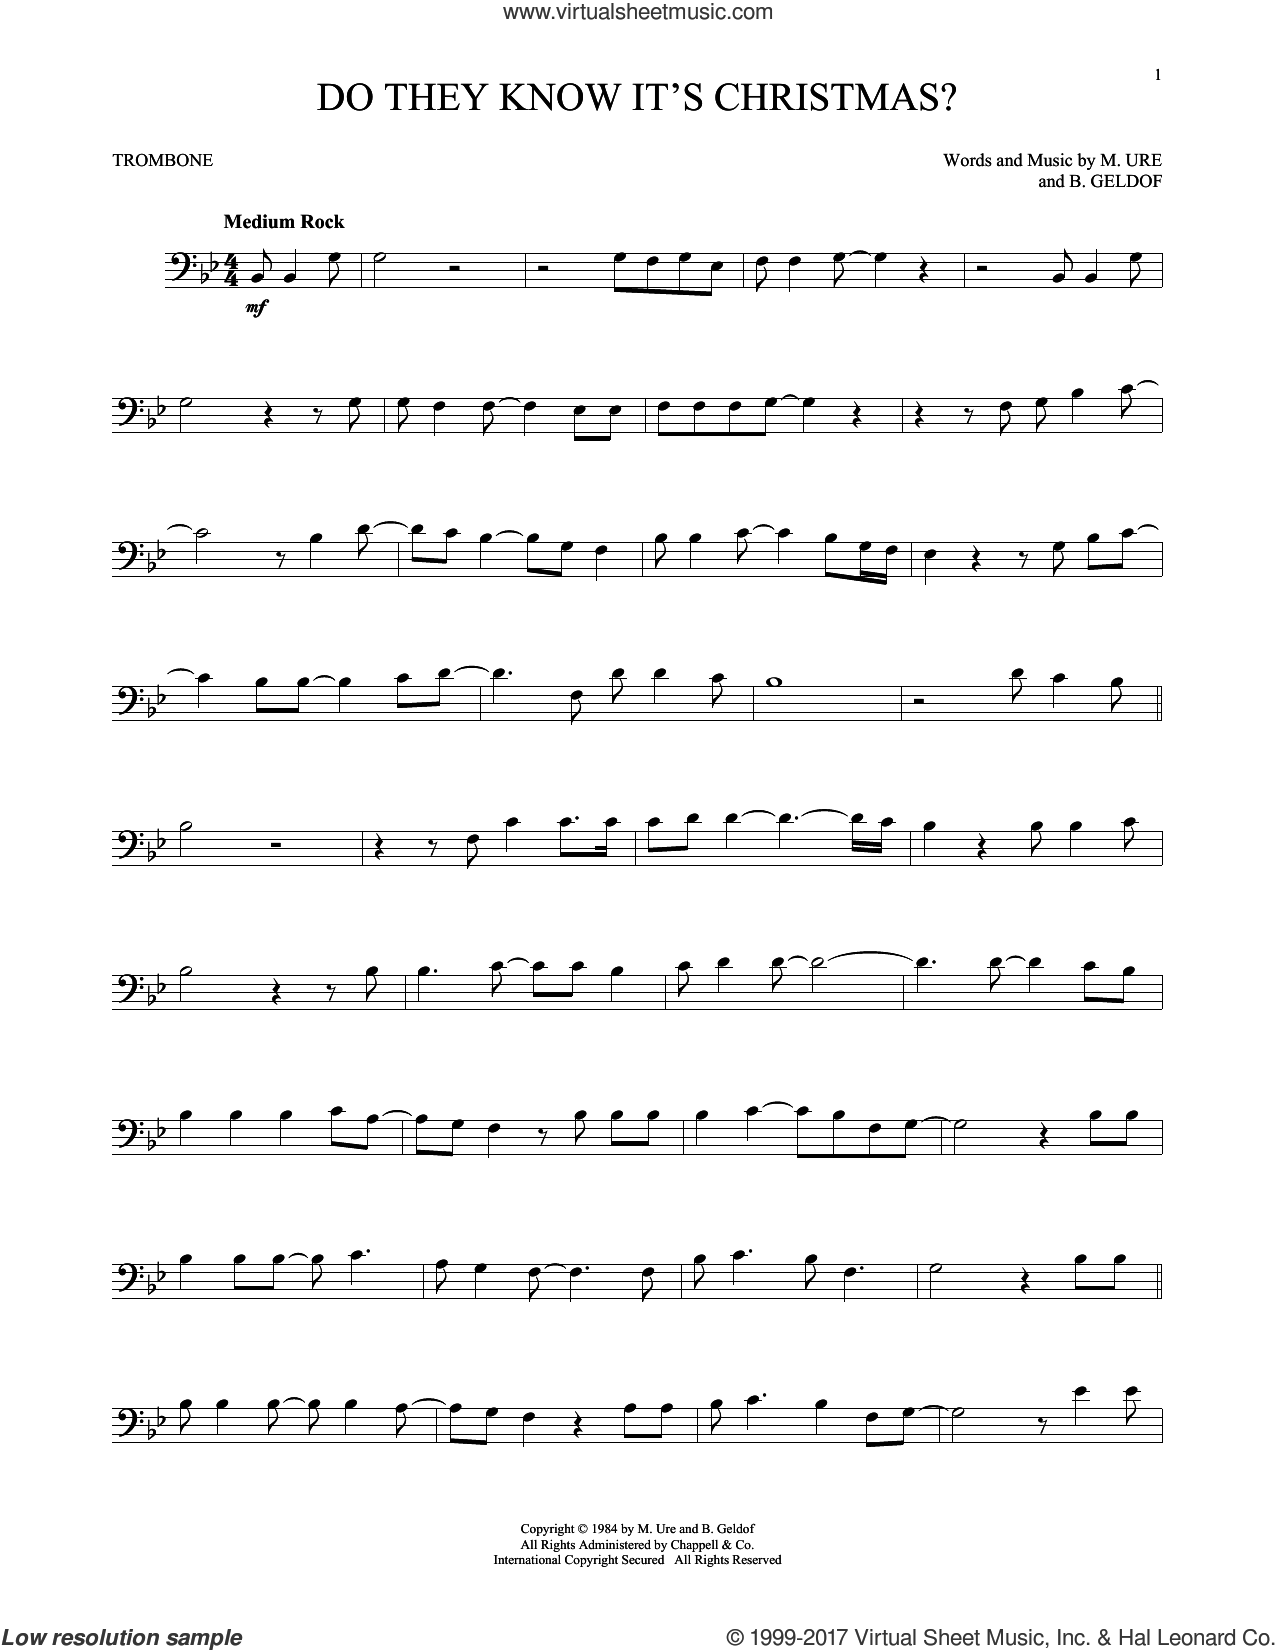 Do They Know It's Christmas? (Feed The World) sheet music for trombone solo by Midge Ure and Bob Geldof. Score Image Preview.